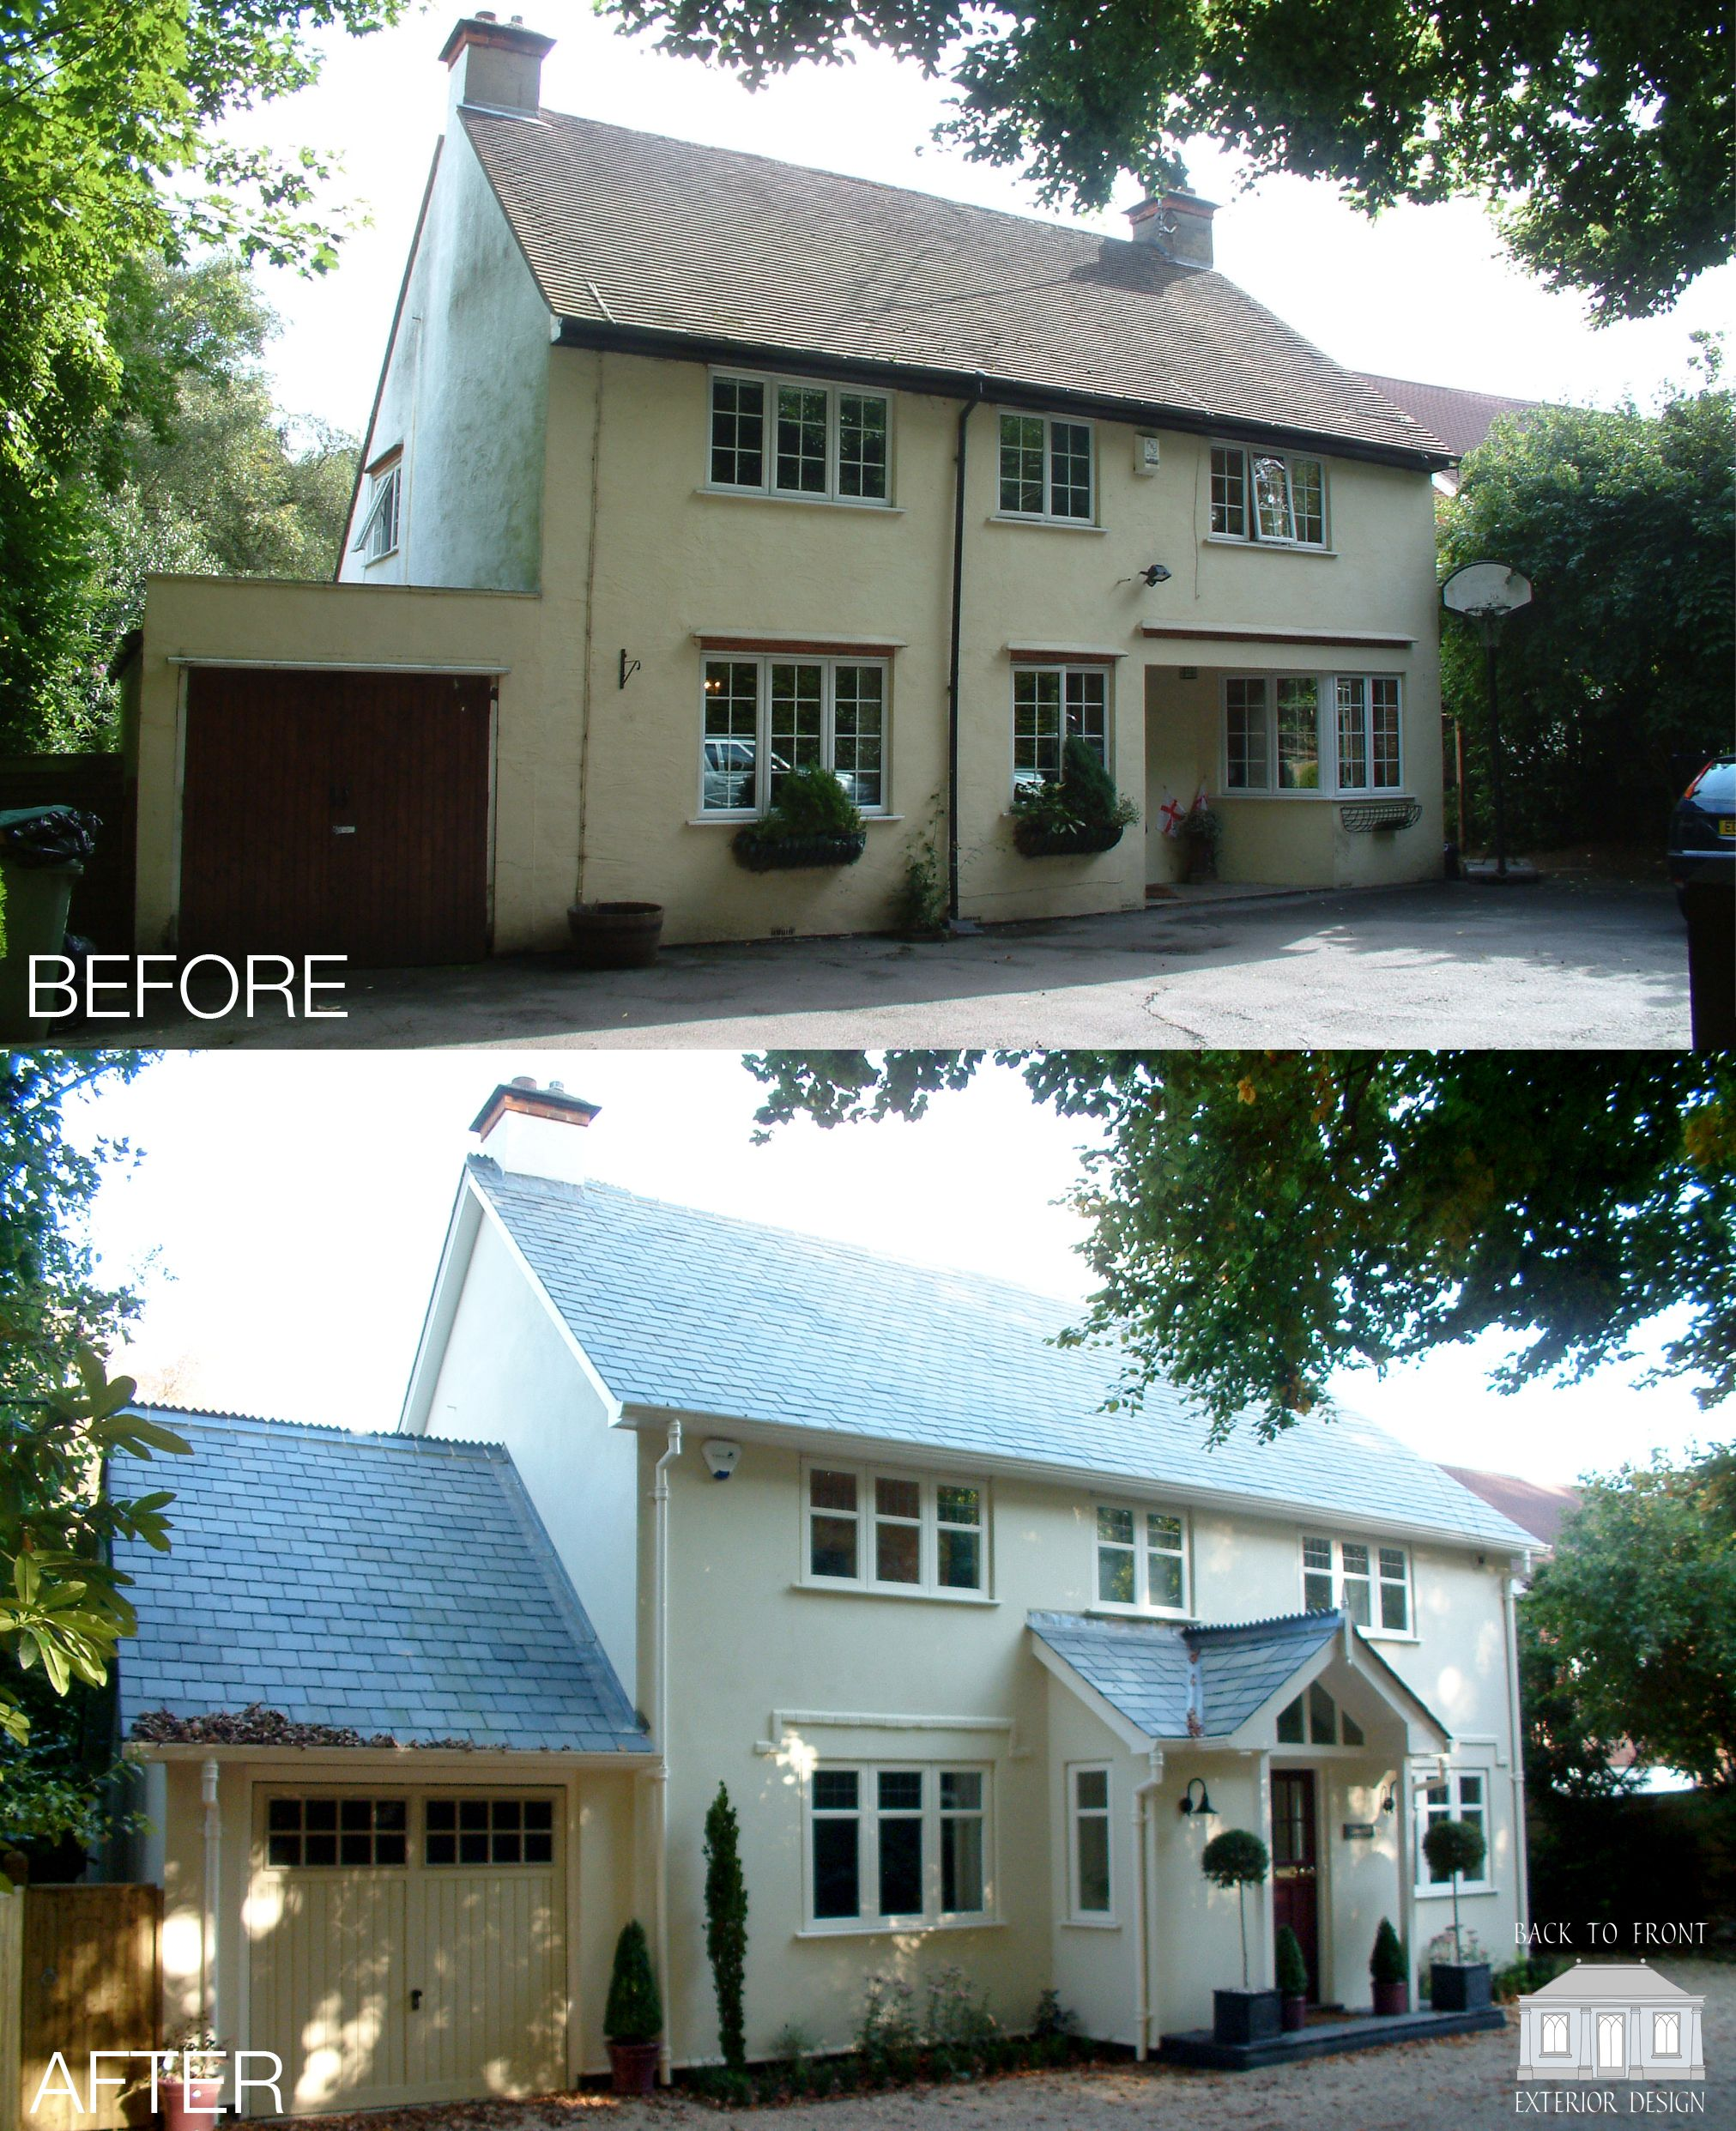 Modern Homes Front And Back: Complete Renovation Of This Lovely Berkshire Home By Back